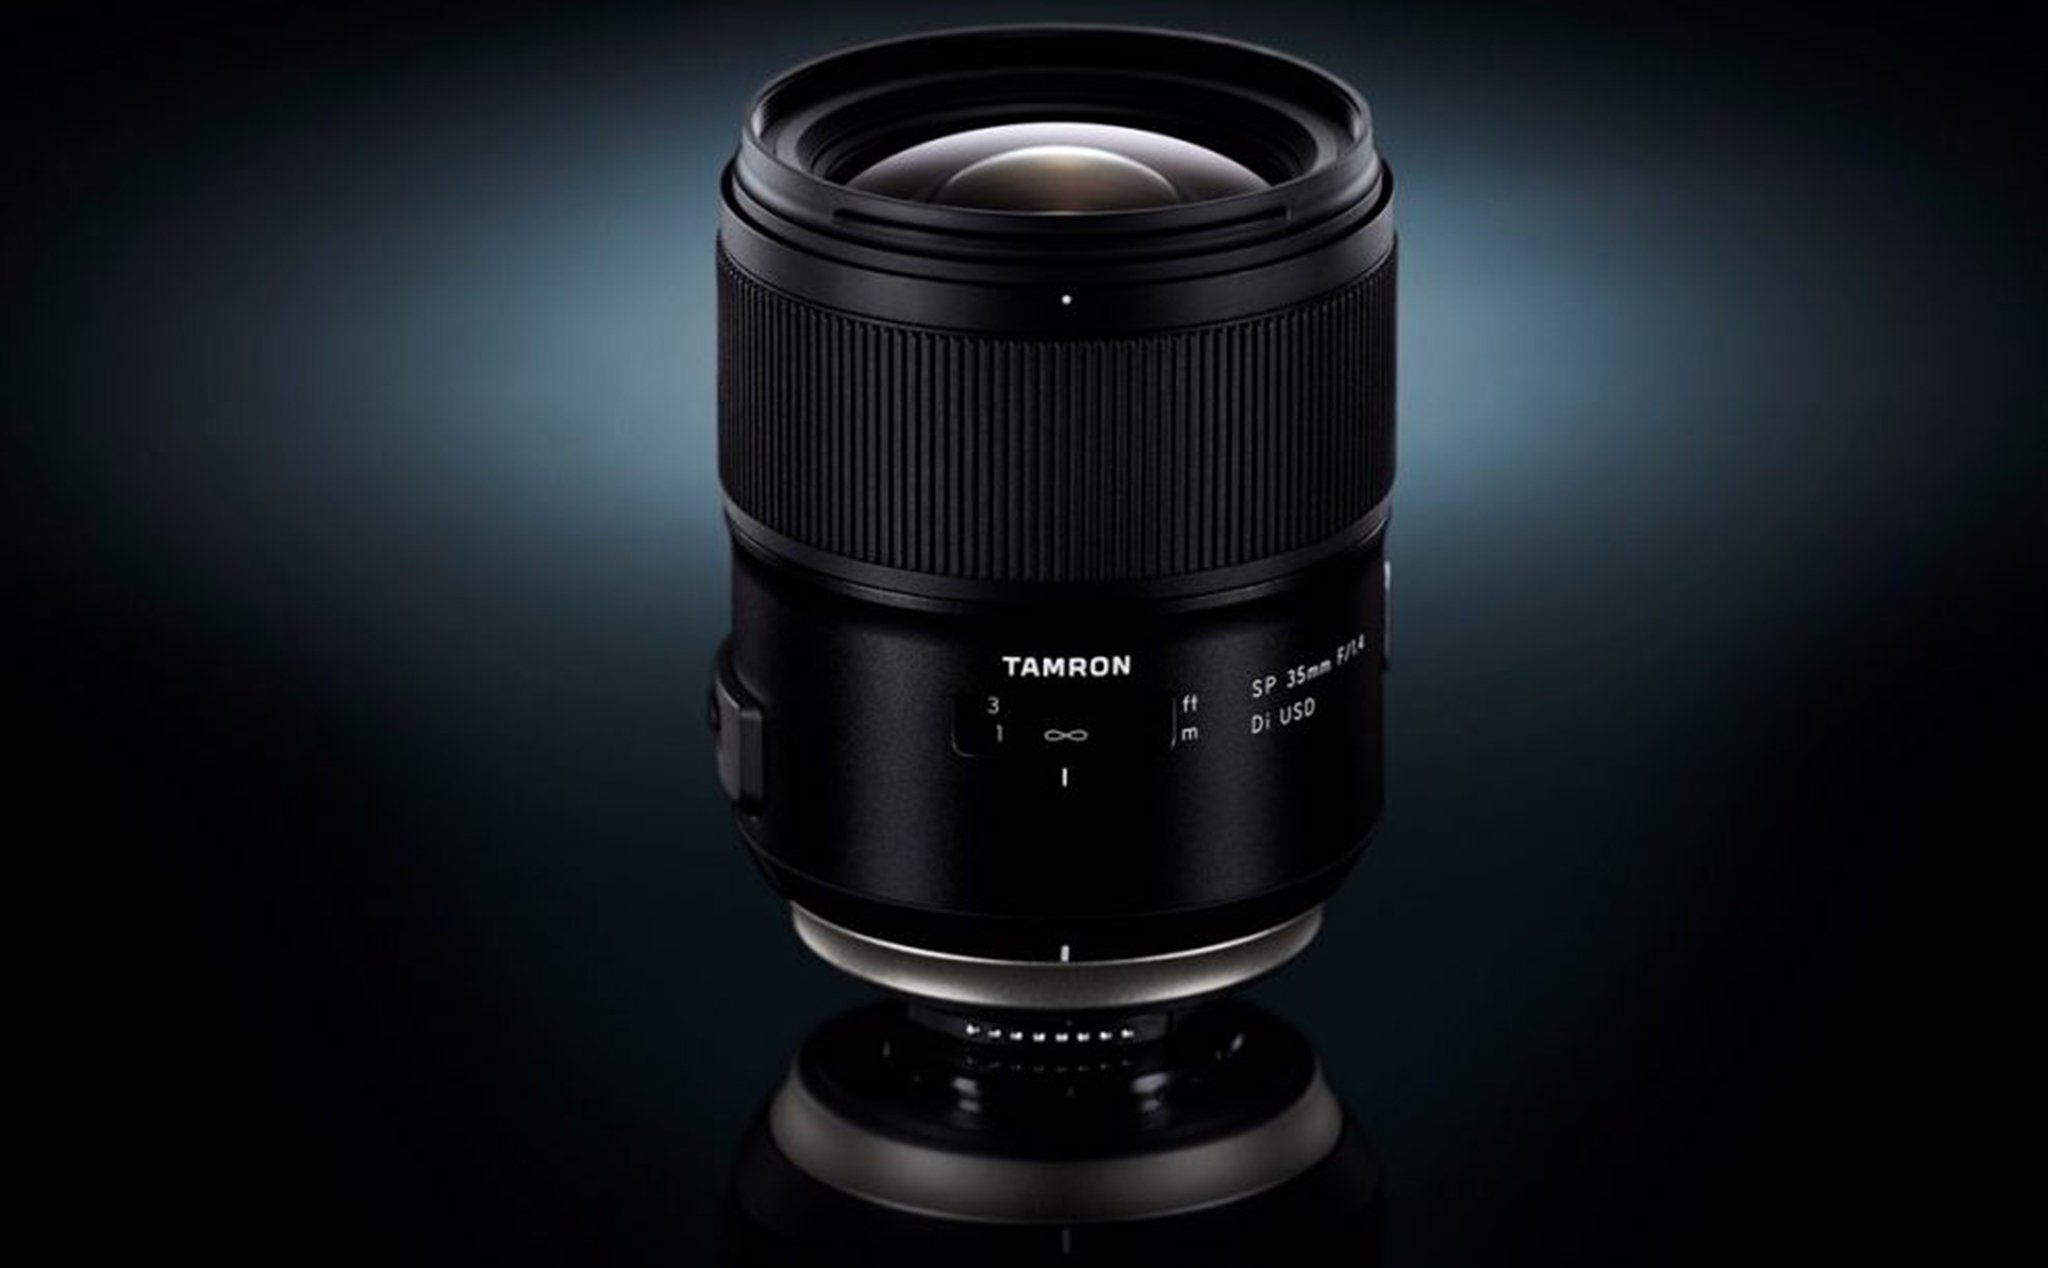 Tamron officially sells the SP 35mm f / 1.4 Di USD lens for Nikon and Canon fullframe cameras